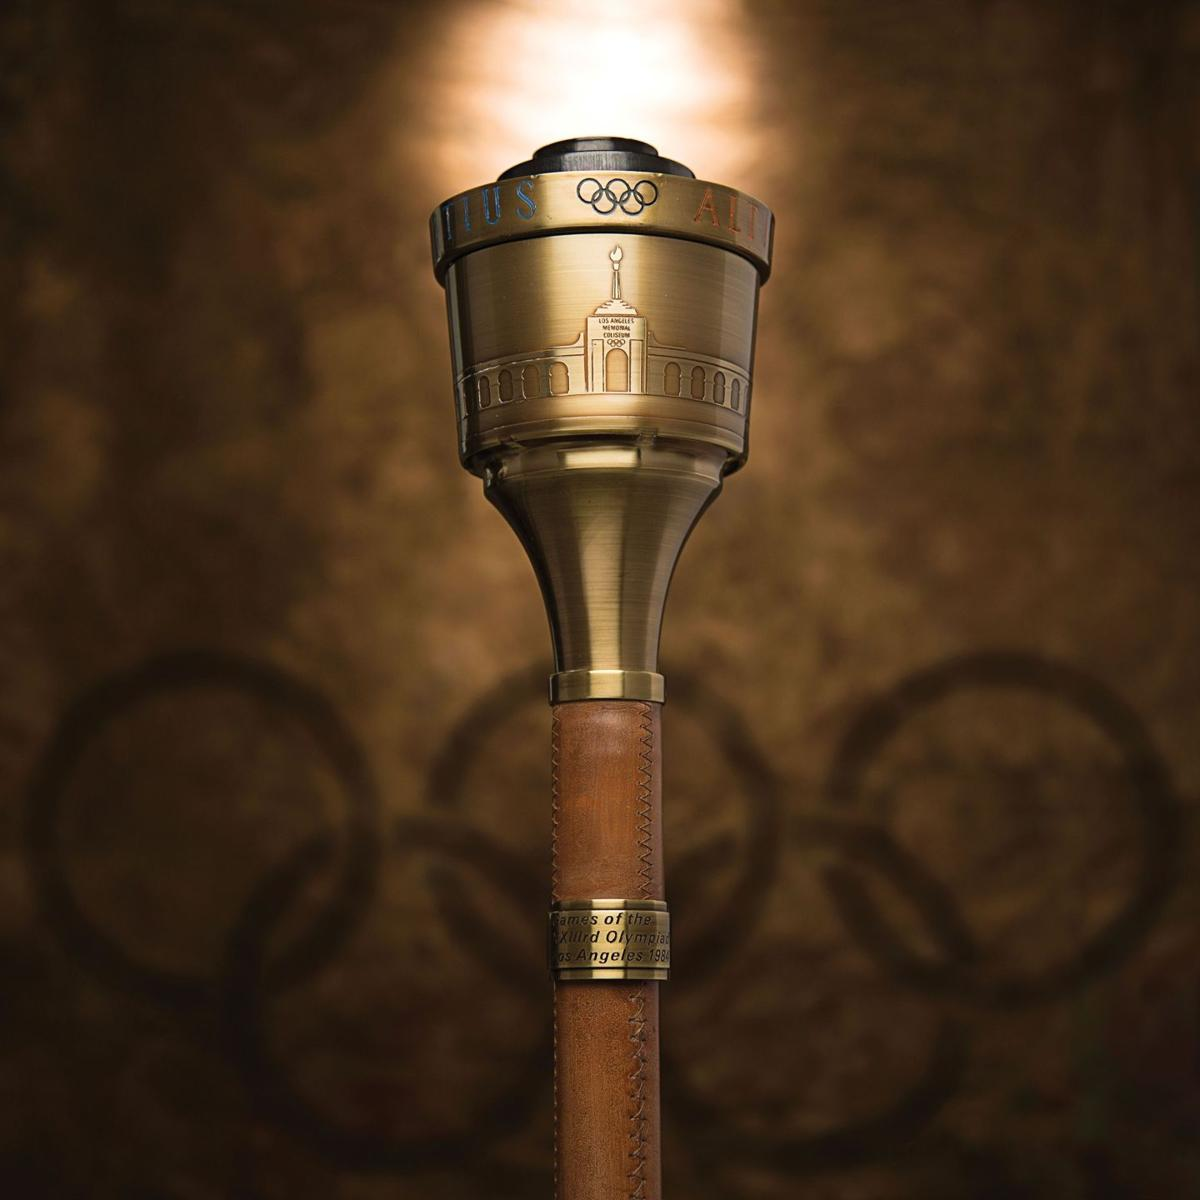 Jenner's Olympic Torch to be auctioned